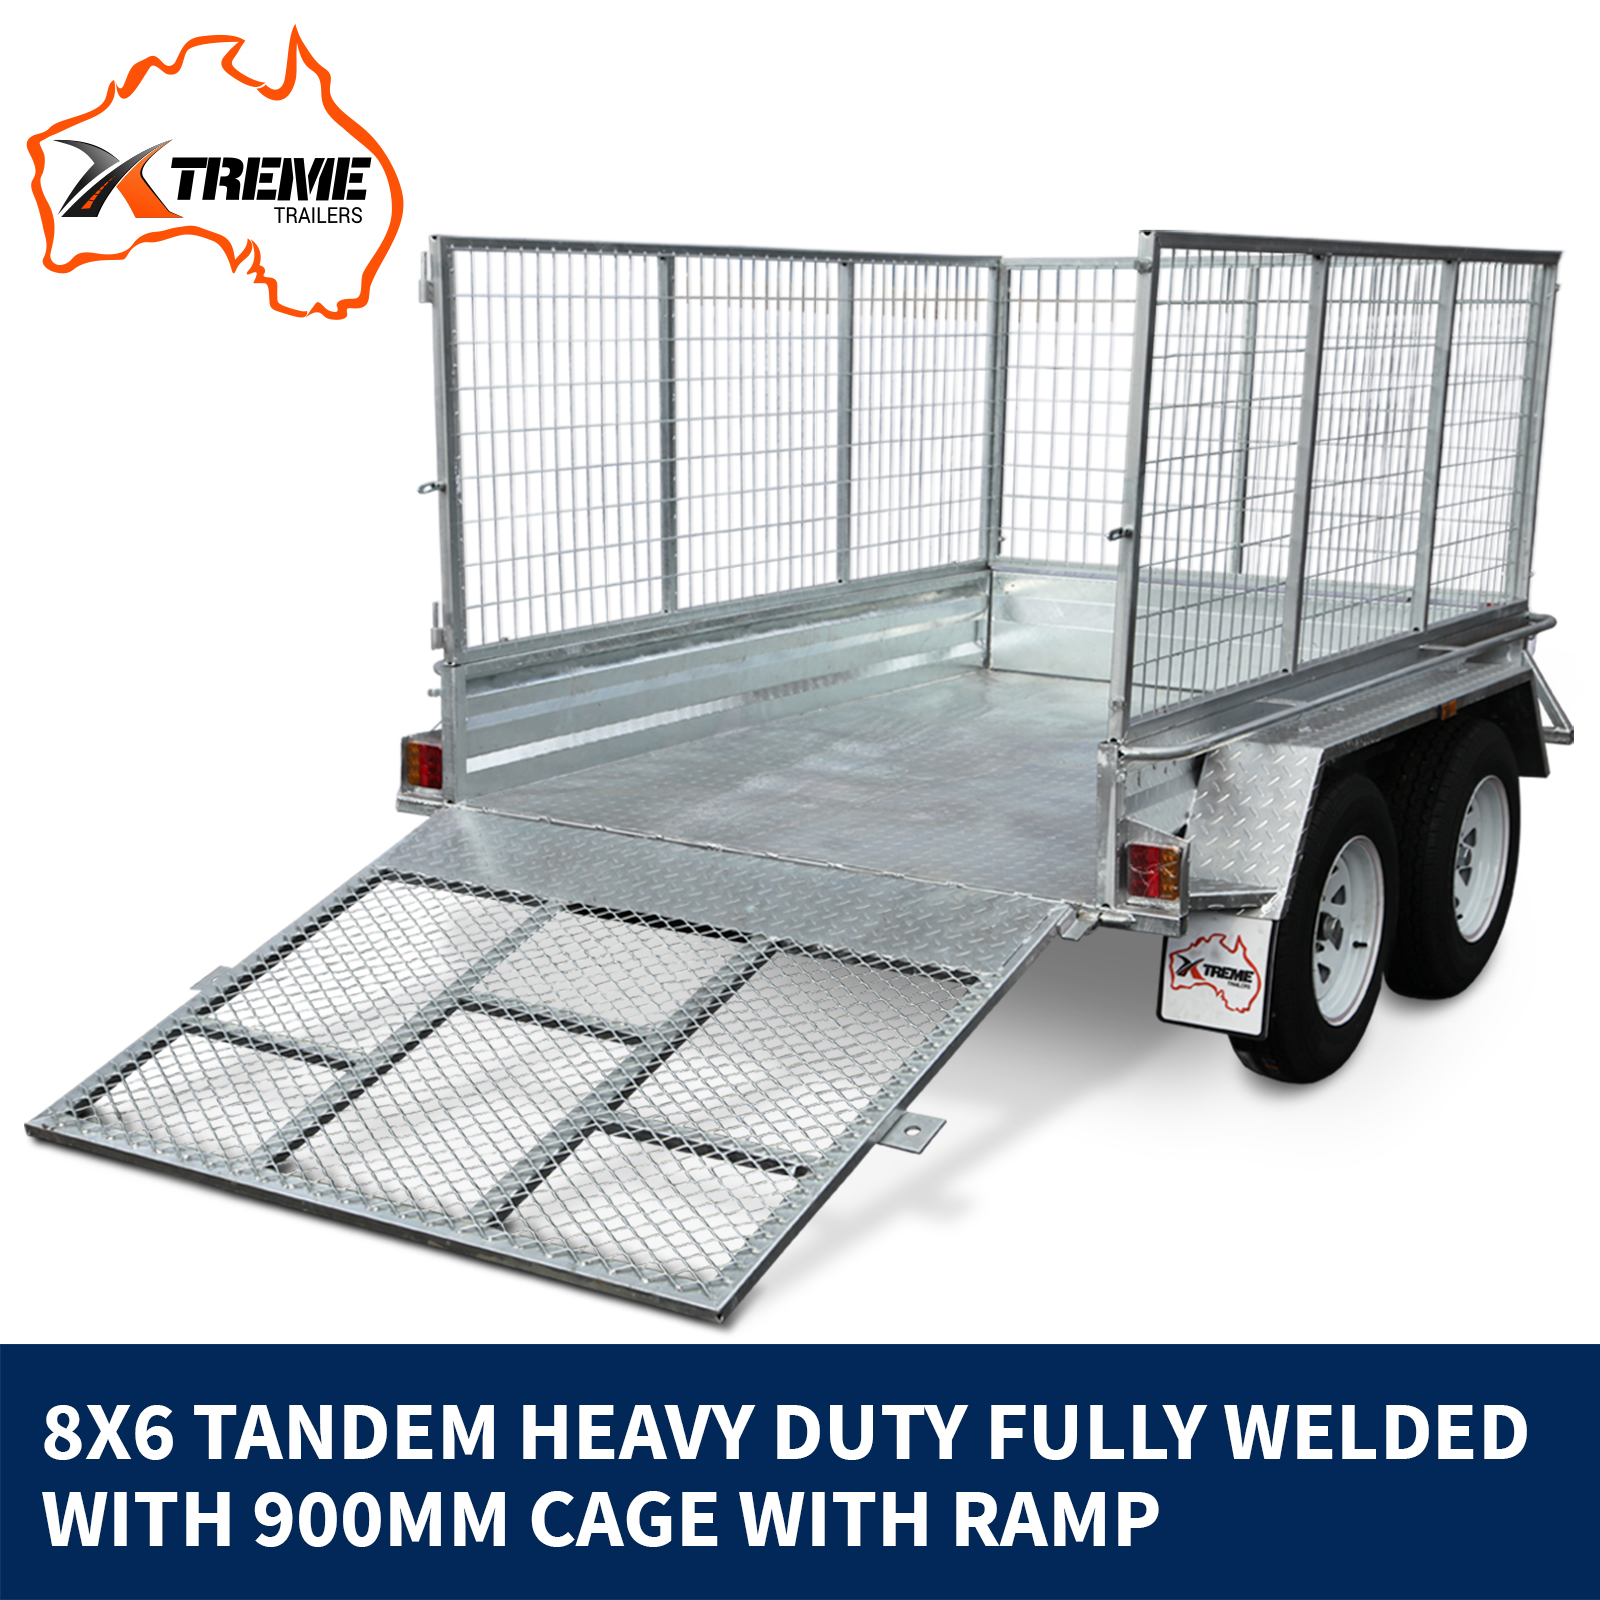 New 8x6 Tandem Axle Trailer with 900 mm Cage from Xtreme Trailers